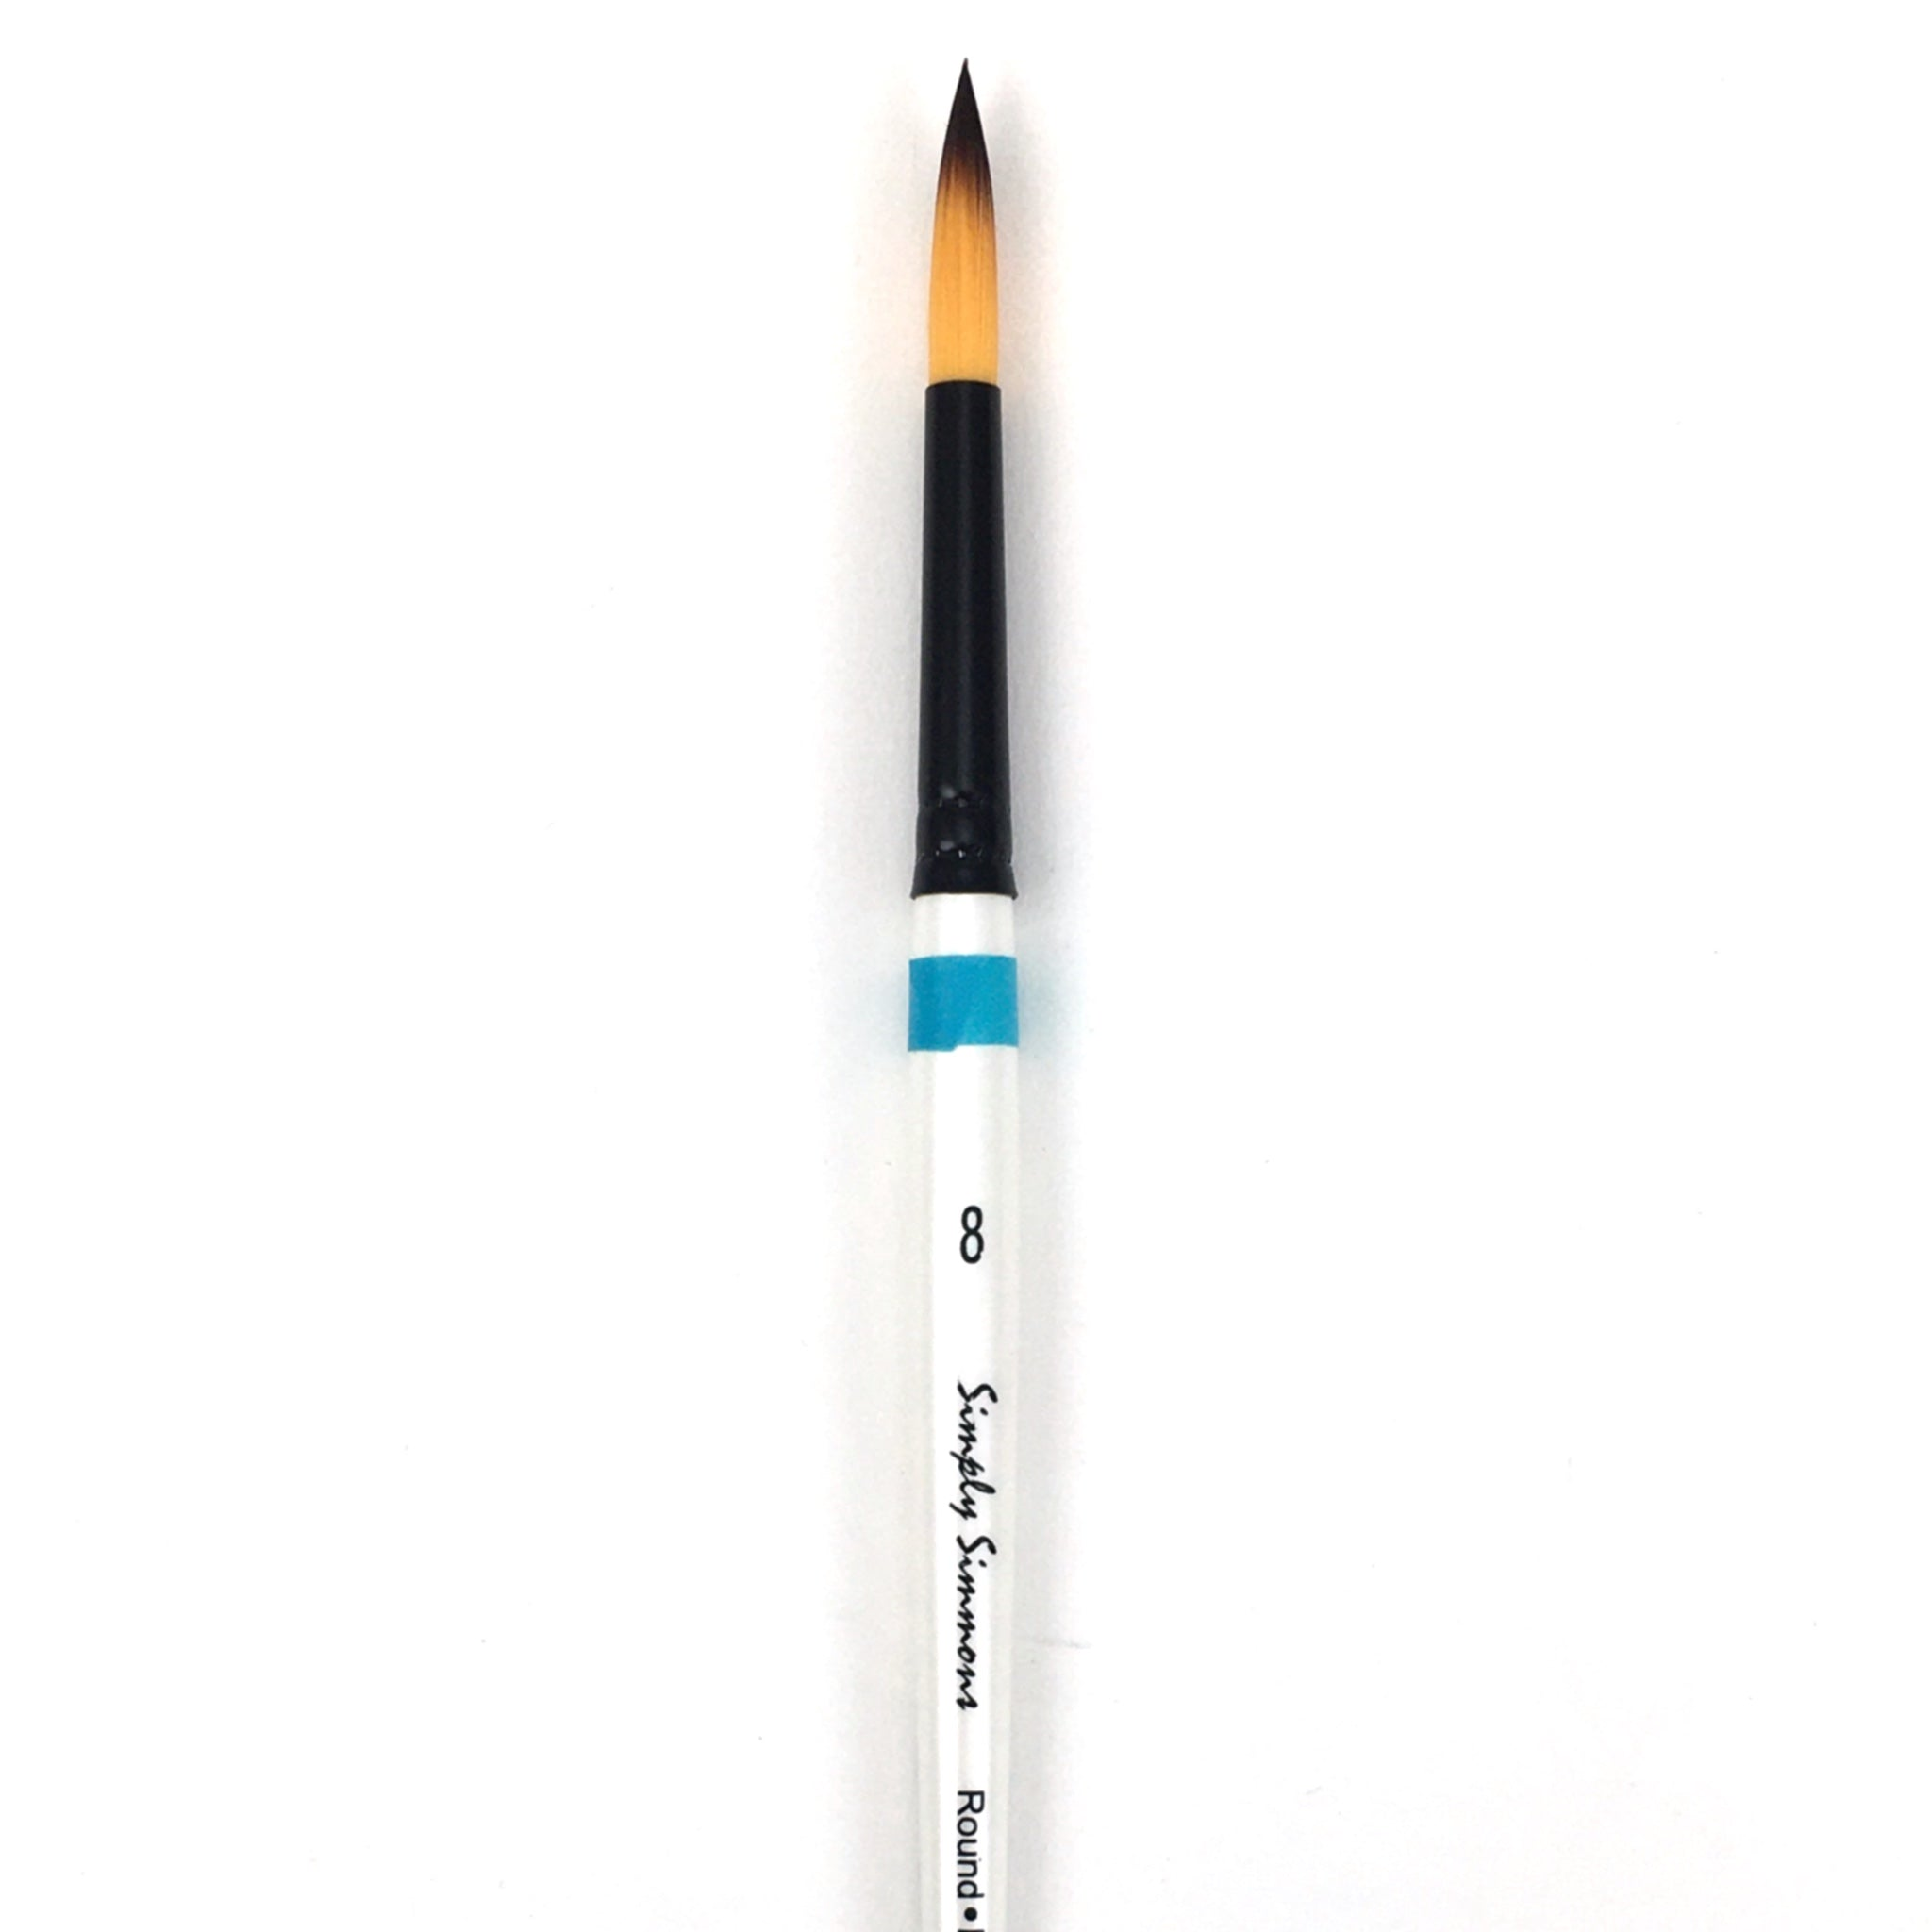 Robert Simmons Simply Simmons Watercolor Brush (Short Handle) - Round / - #8 / - synthetic by Robert Simmons - K. A. Artist Shop